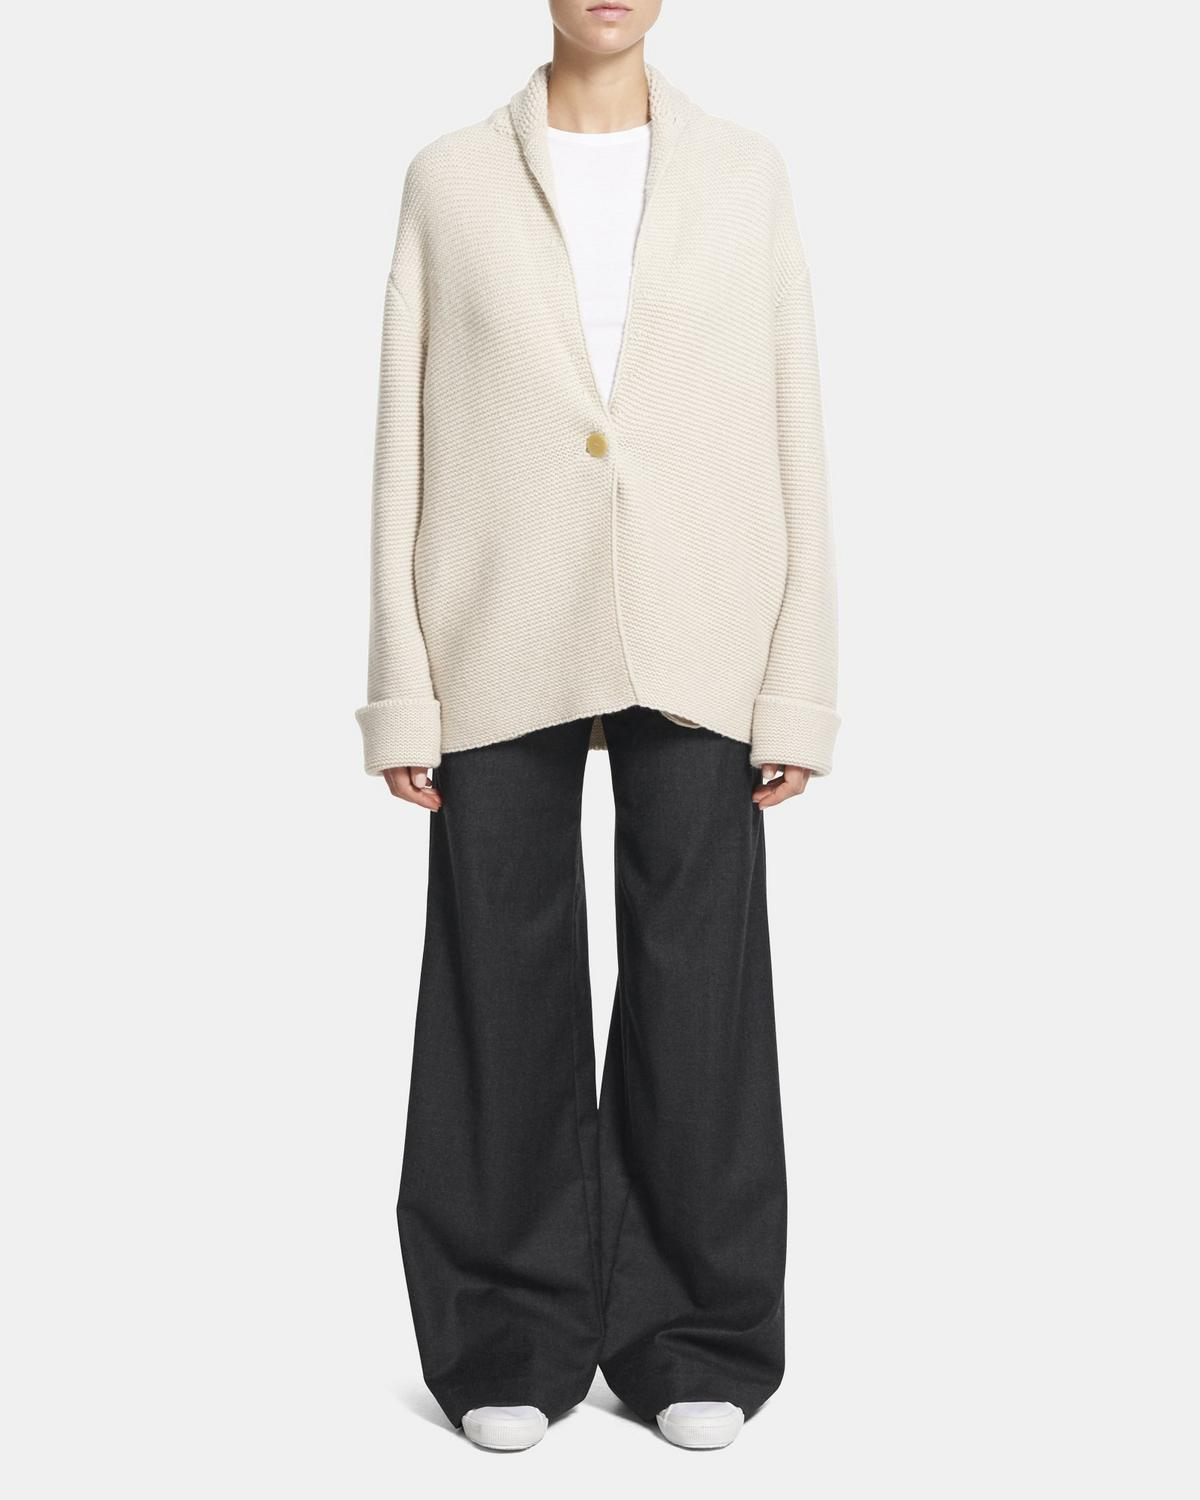 Sweater Coat in Wool-Cashmere